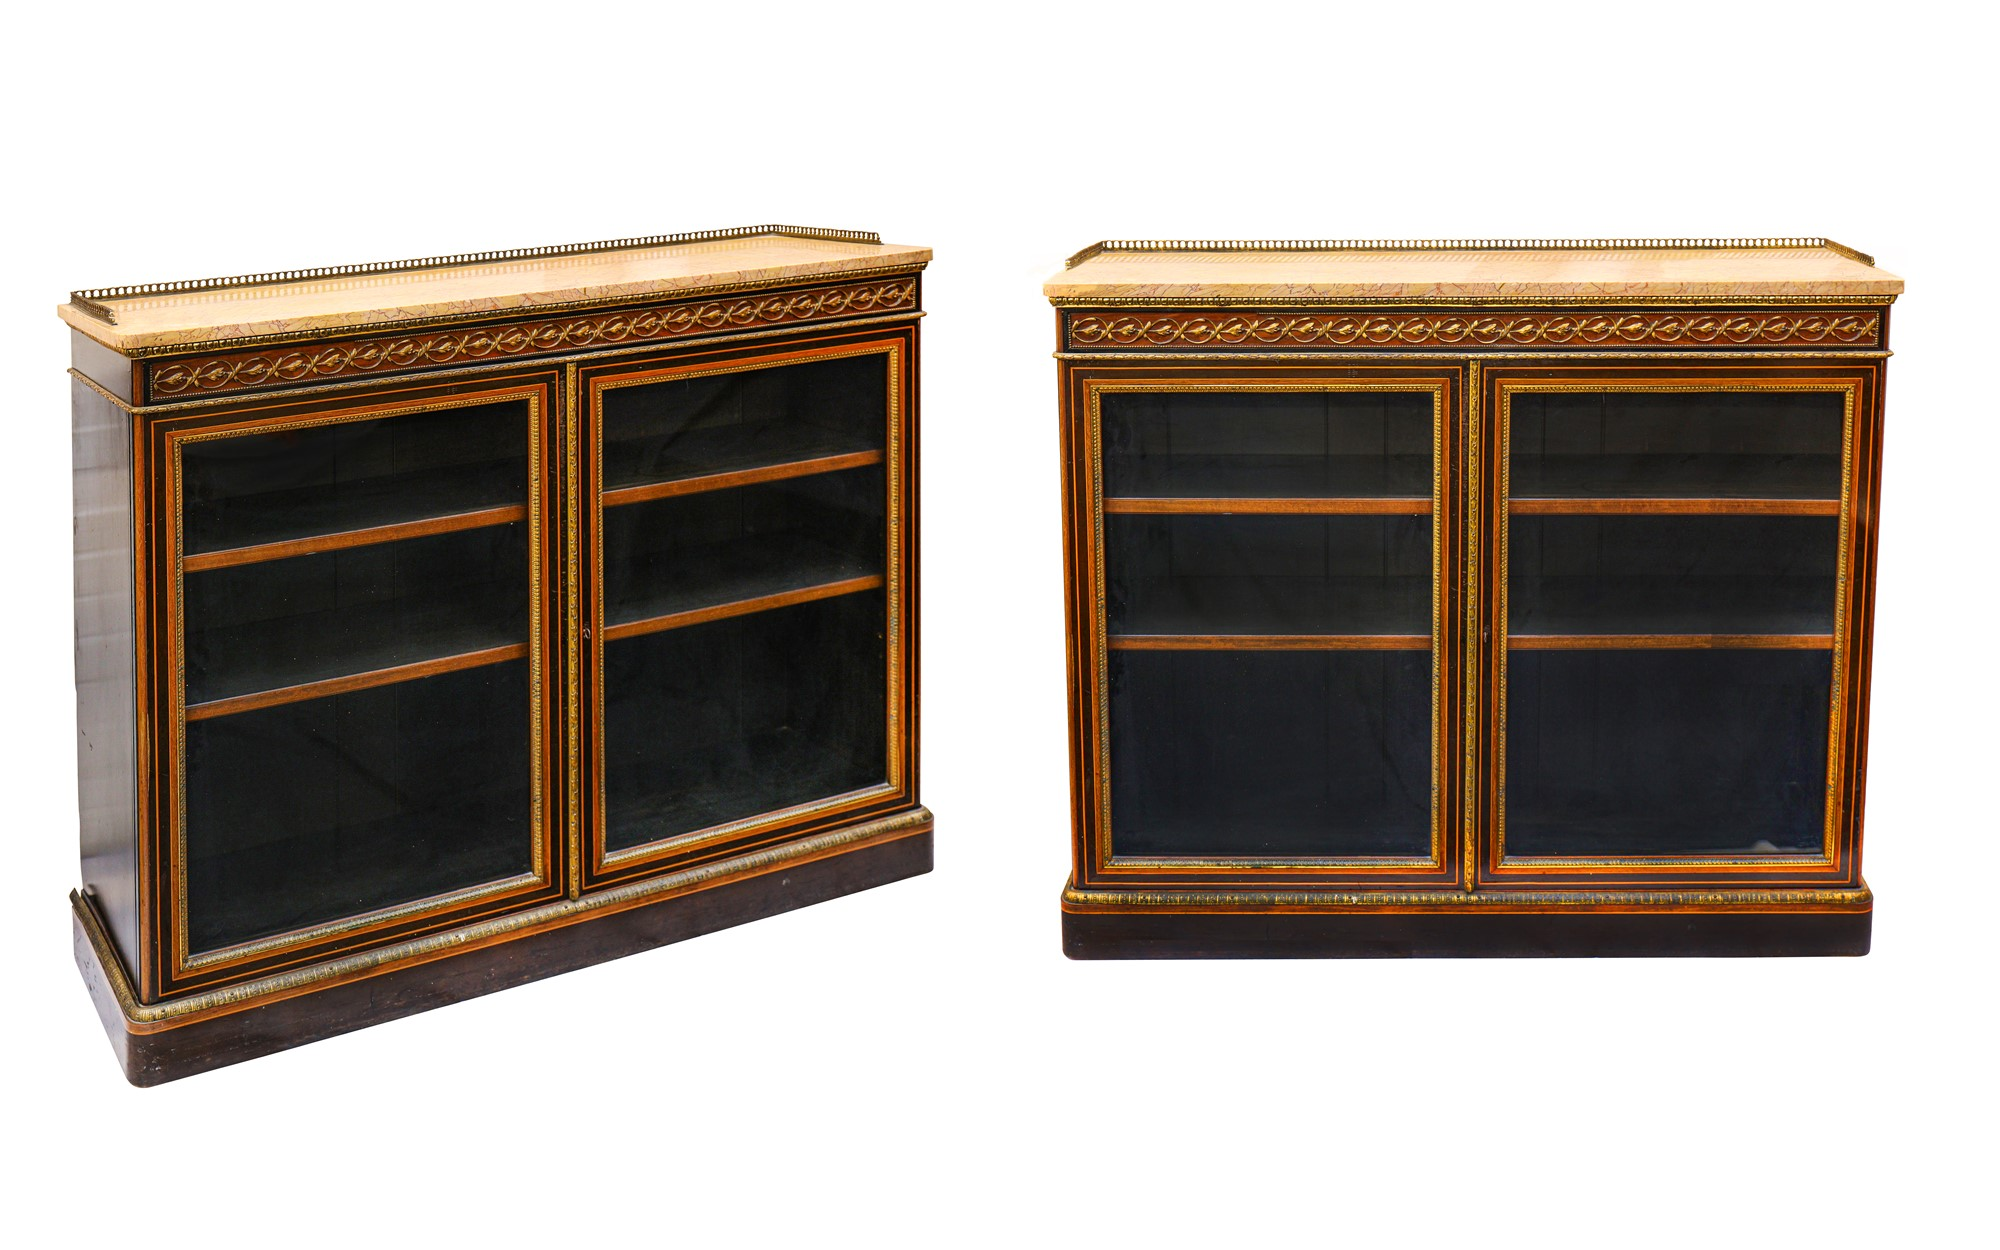 Walnut and gilt 19th century cabinets